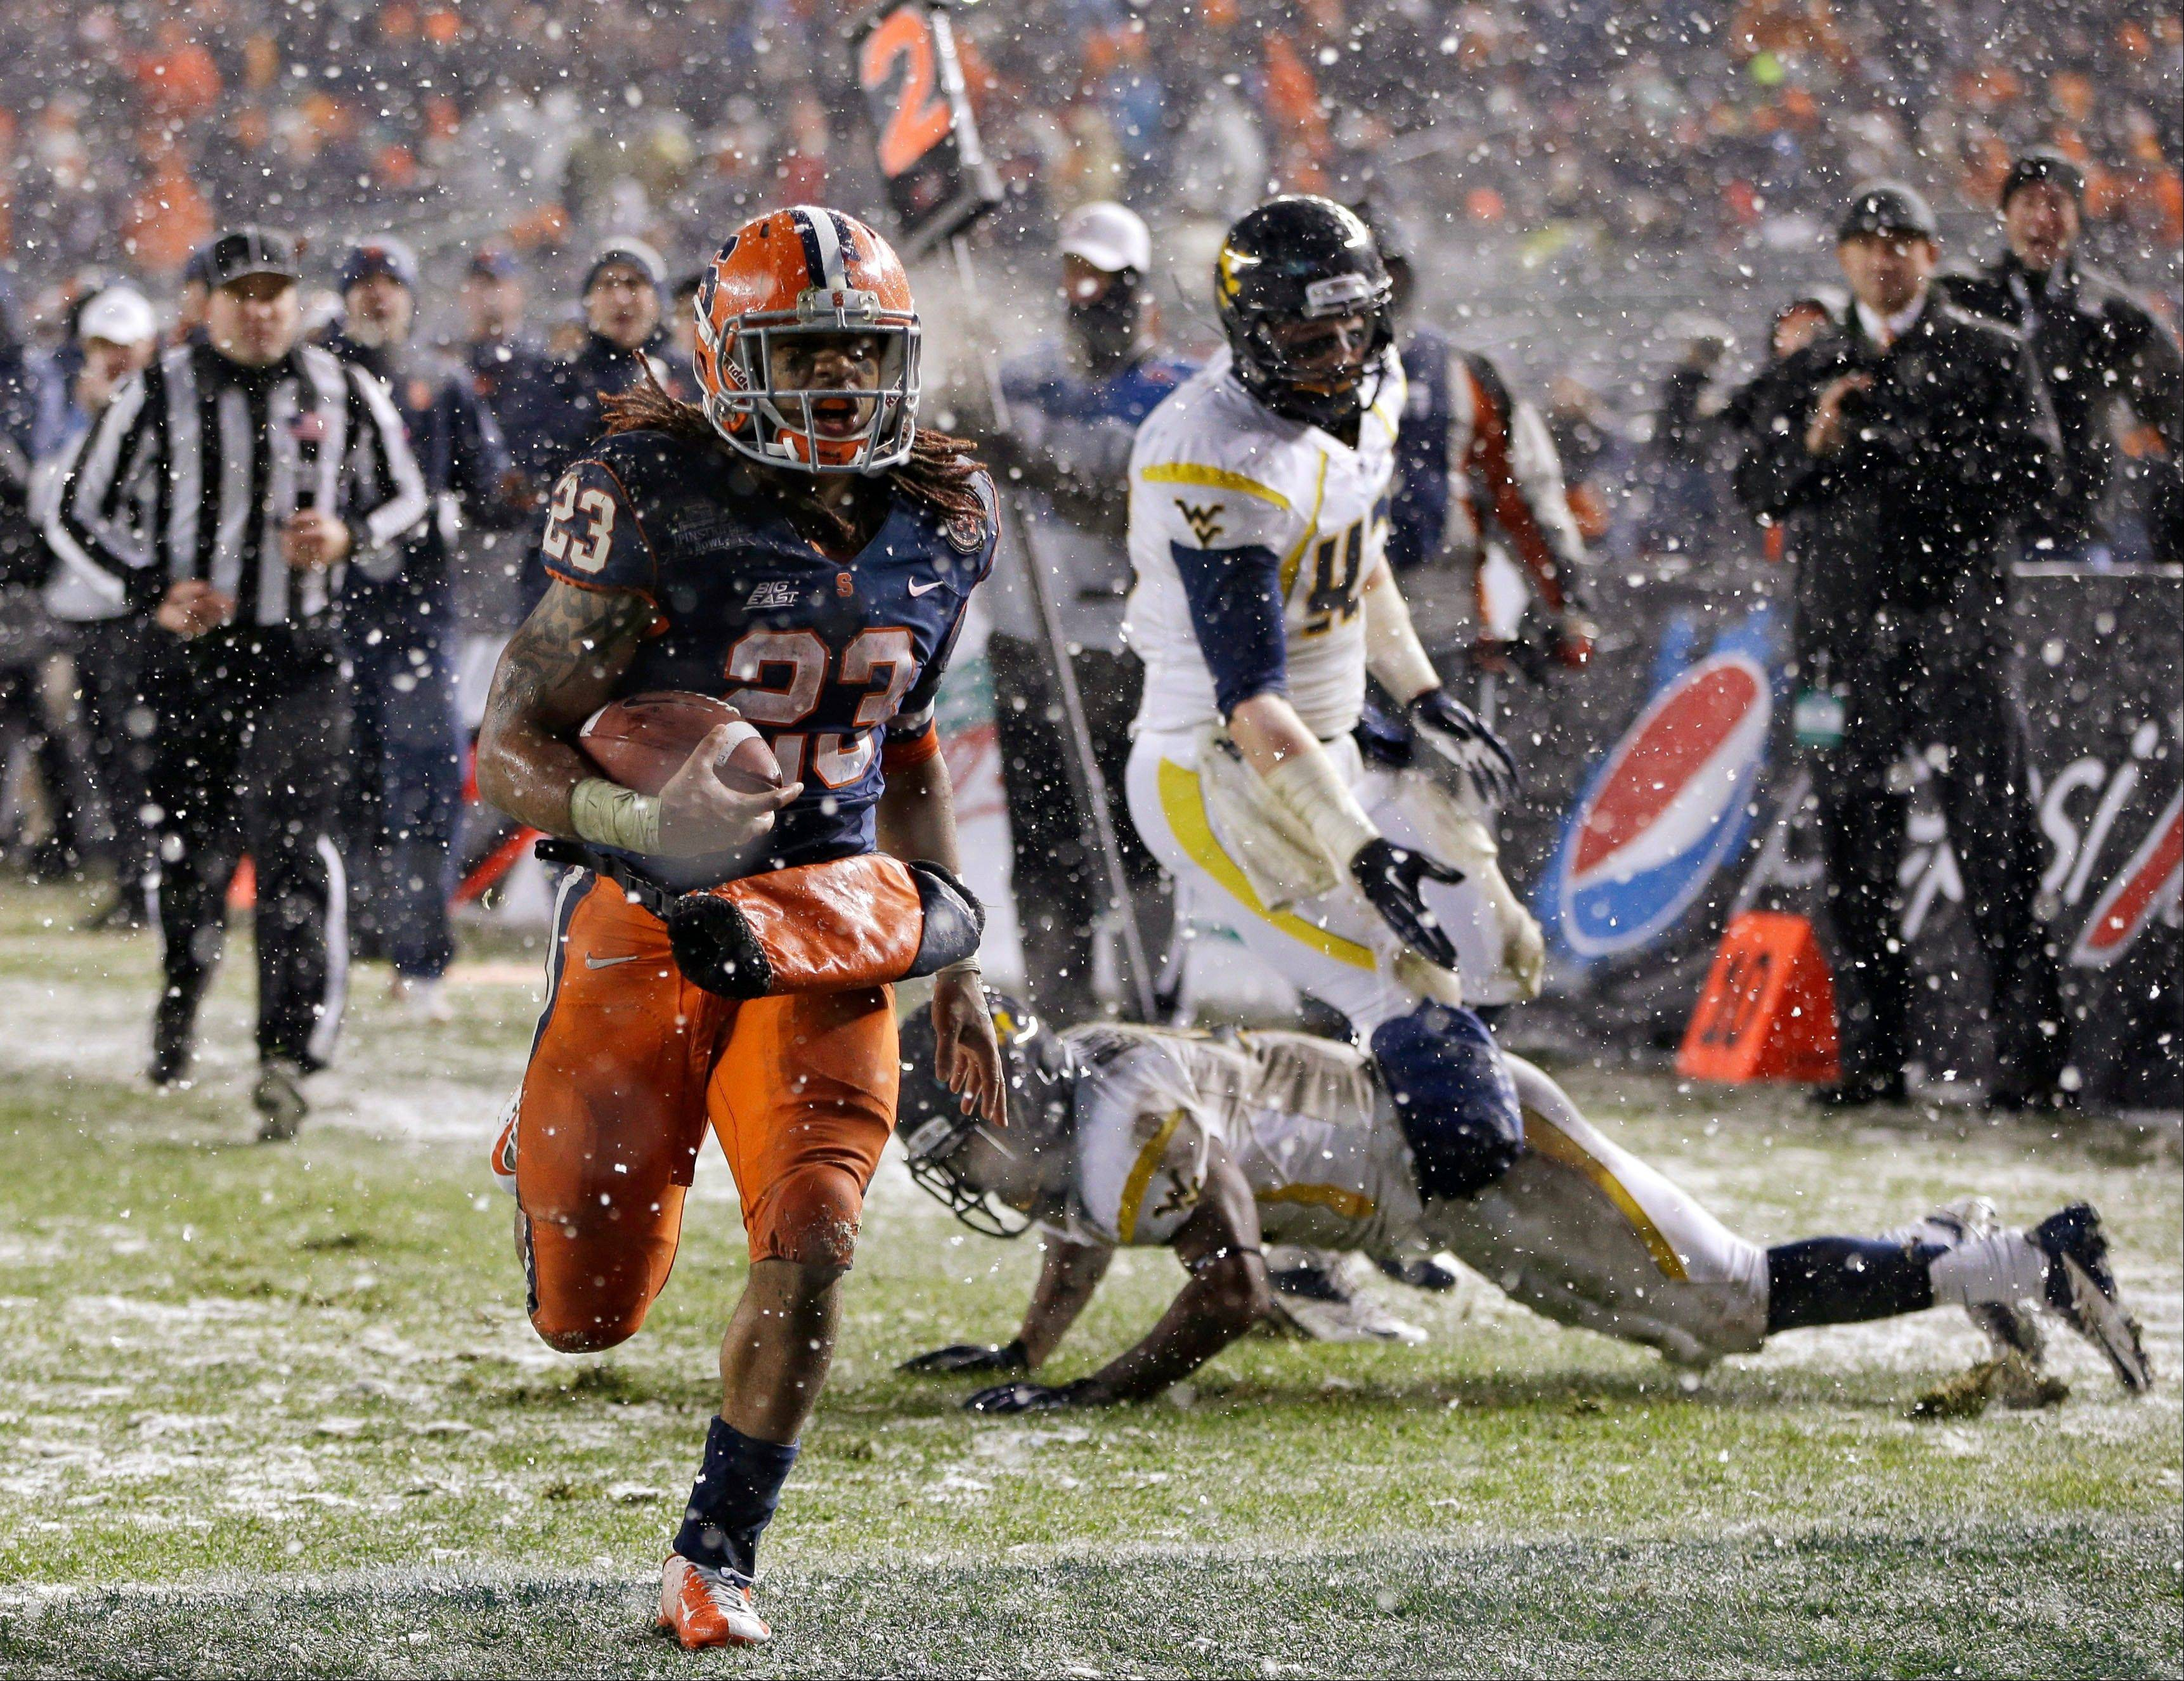 Syracuse running back Prince-Tyson Gulley (23) scores a touchdown, leaving West Virginia defenders in his wake during the third quarter of the Pinstripe Bowl NCAA college football game at Yankee Stadium in New York, Saturday, Dec. 29, 2012. Sryacuse won 38-14.